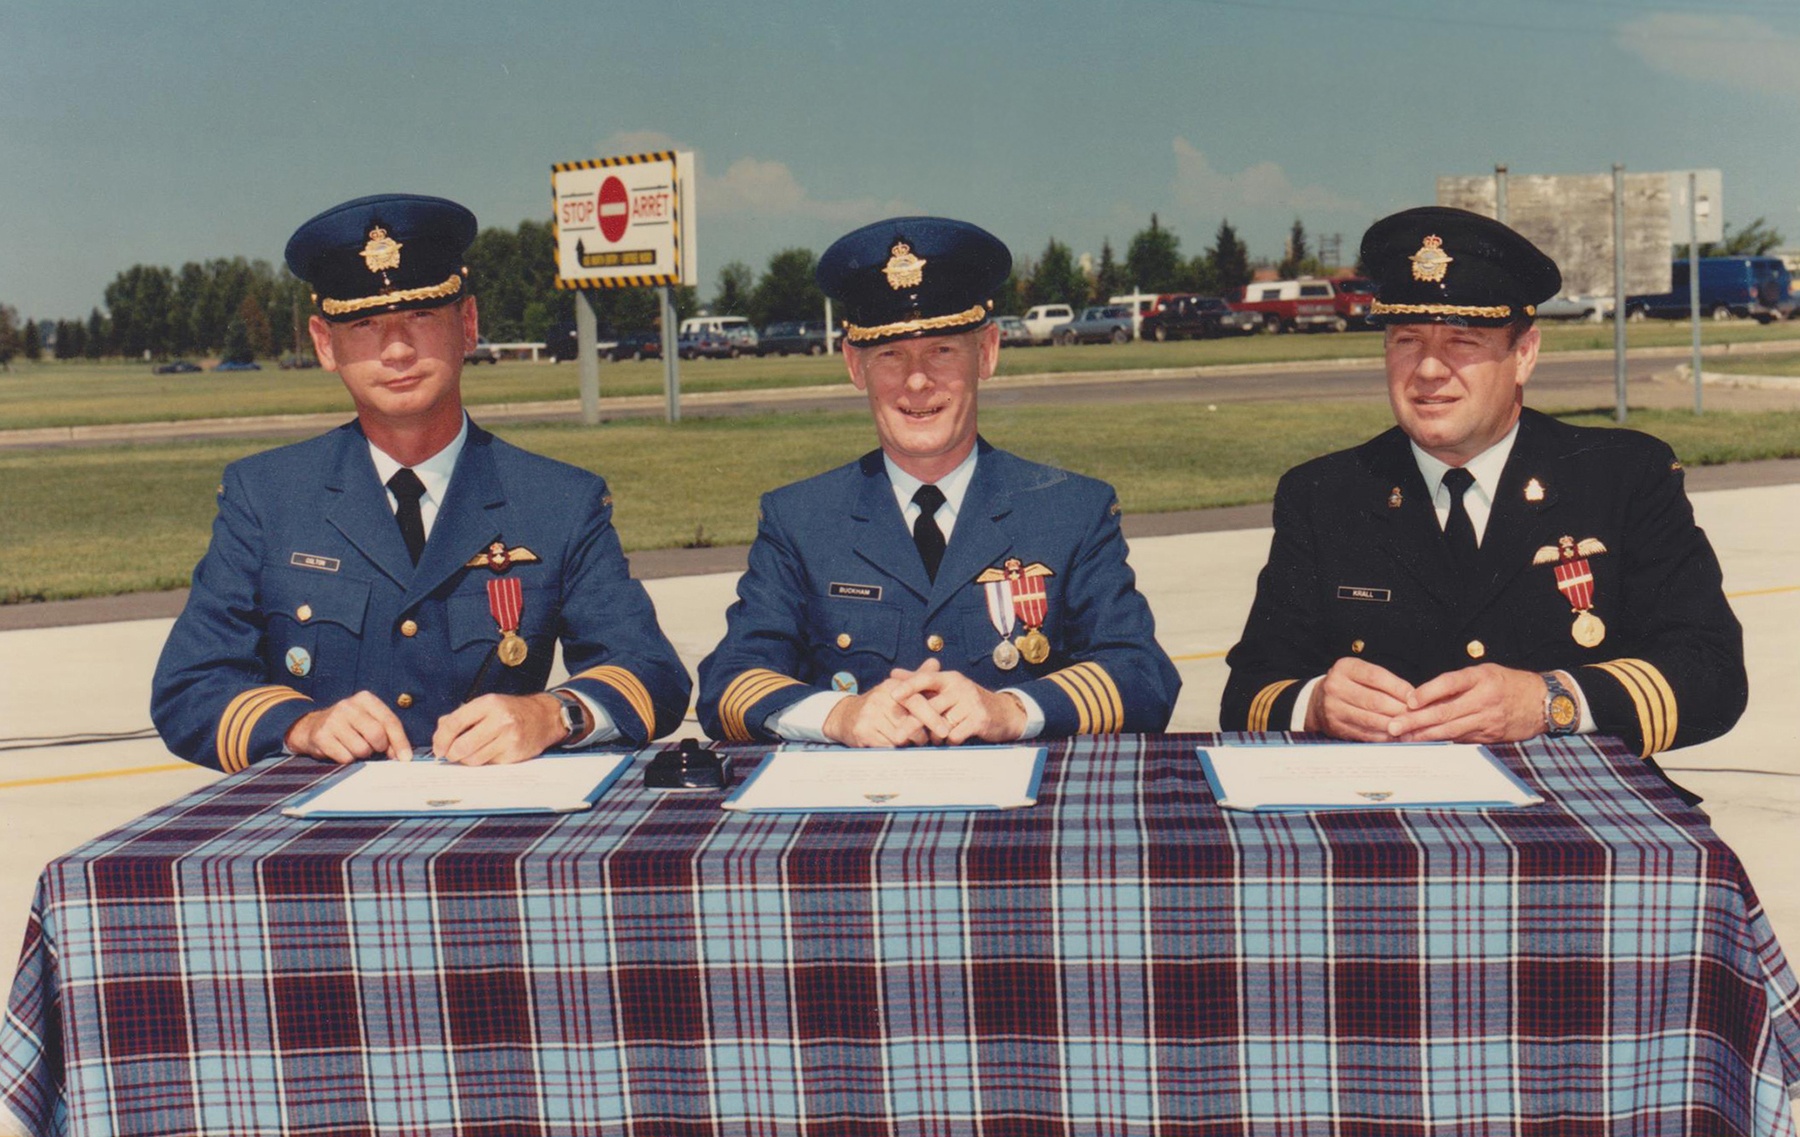 Atop the traditional drape of Royal Canadian Air Force tartan, Lieutenant-Colonel Chris Colton (left), incoming commanding officer of 440 Transport Squadron, and Lieutenant-Colonel Barry Krall (right), outgoing commanding officer of the squadron, flank Colonel Bill Buckham, 18 Wing Edmonton commander, during the squadron's 1987 change of command ceremony. Lieutenant-Colonel Krall wears the recently phased out tru-service uniform, while the others wear the new. PHOTO: DND